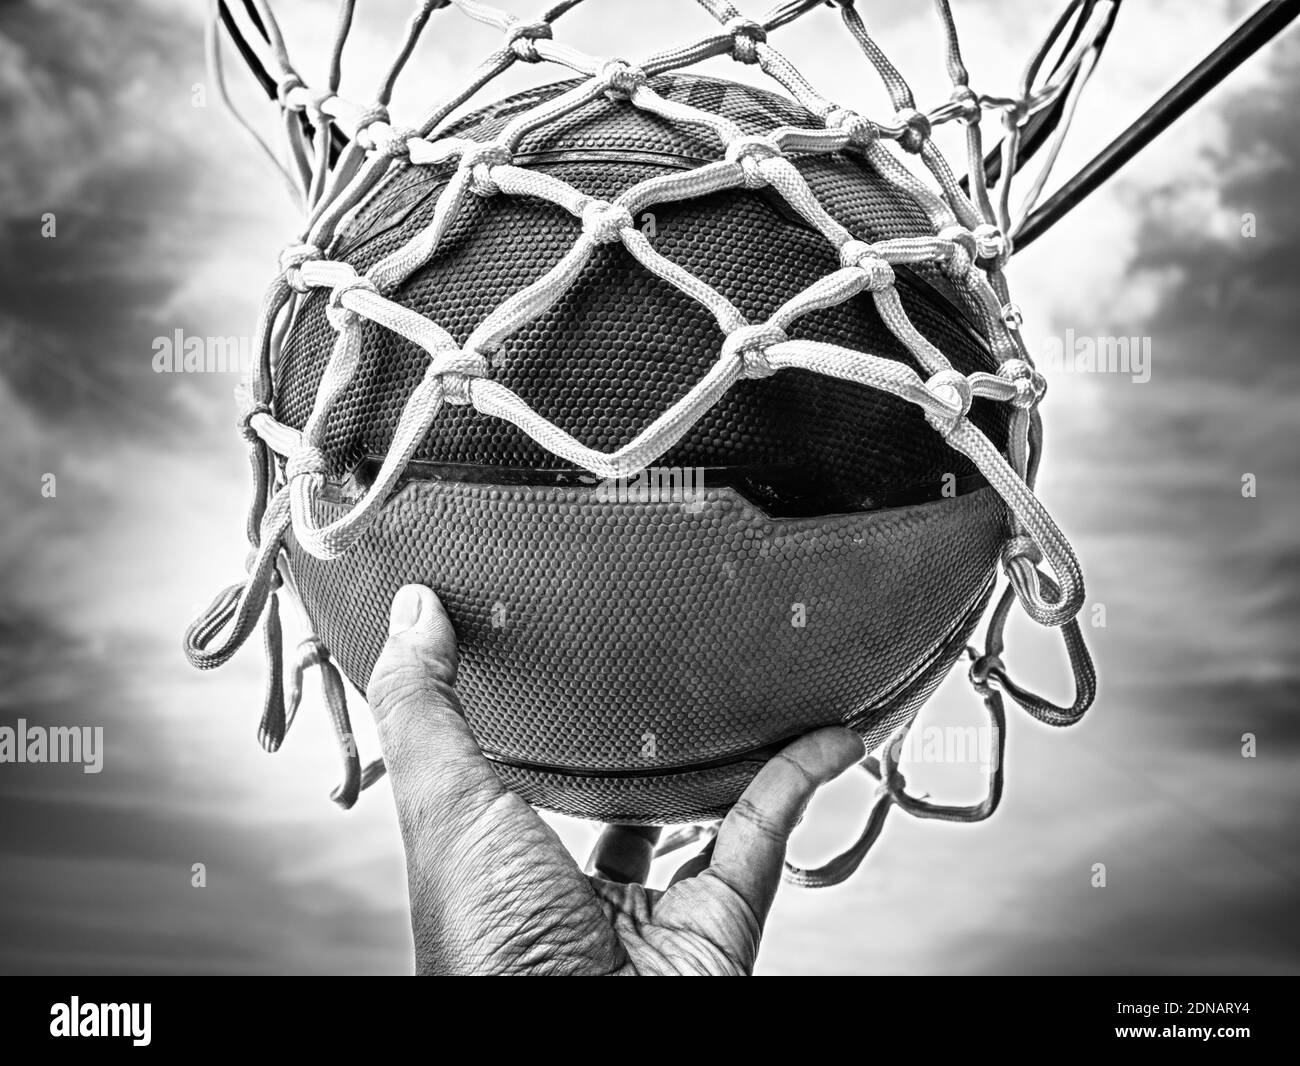 Cropped Hand Holding Ball In Basketball Hoop Stock Photo